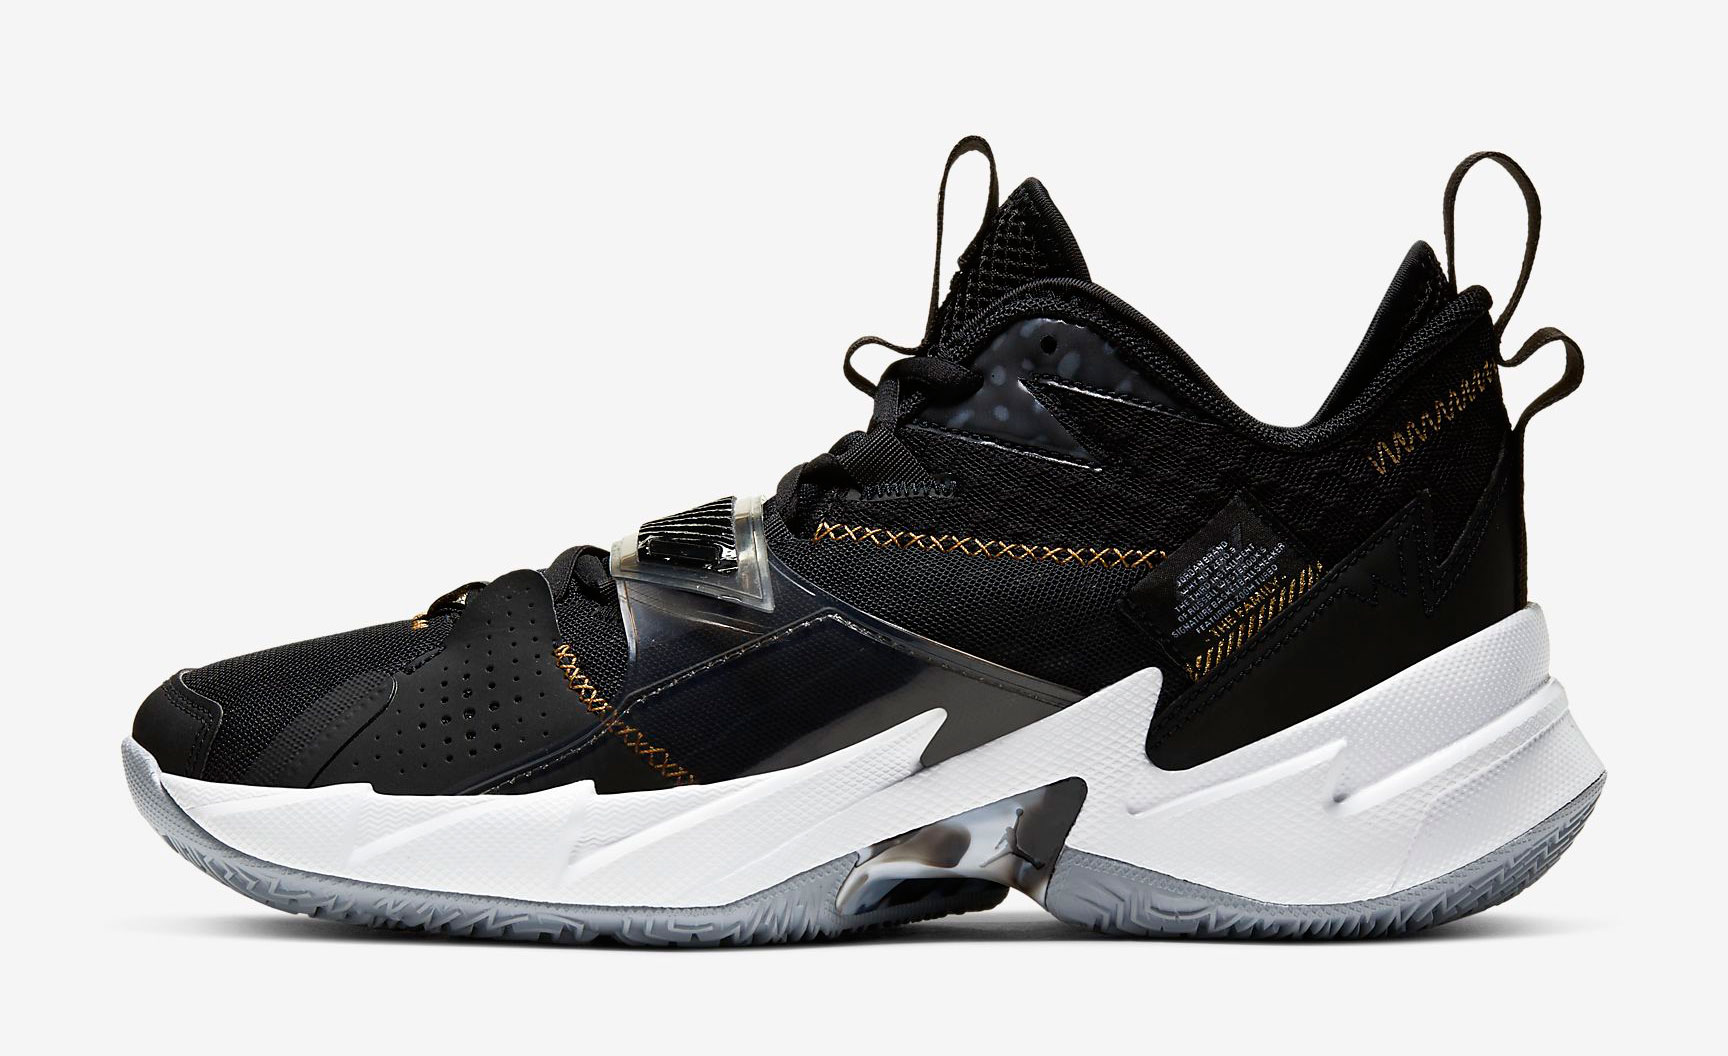 jordan-why-not-zer03-the-family-release-date-2